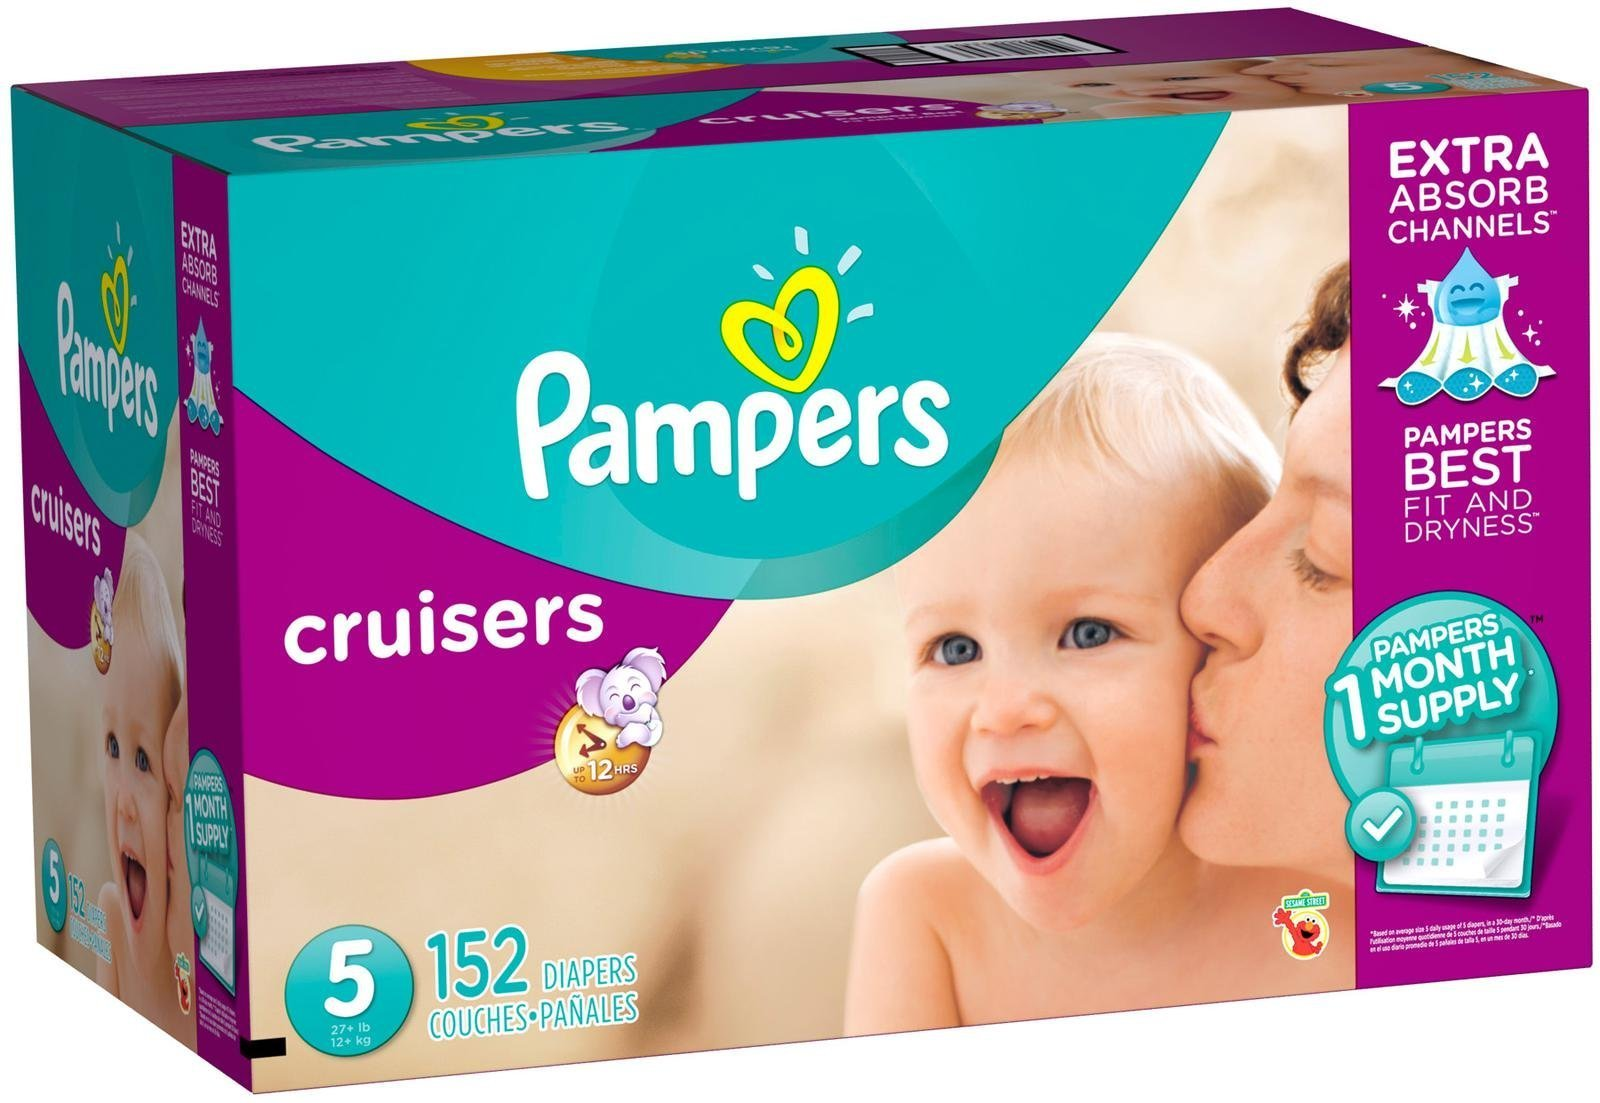 Pampers Cruisers Disposable Diapers Size 5, 152 Count (Packaging May Vary)